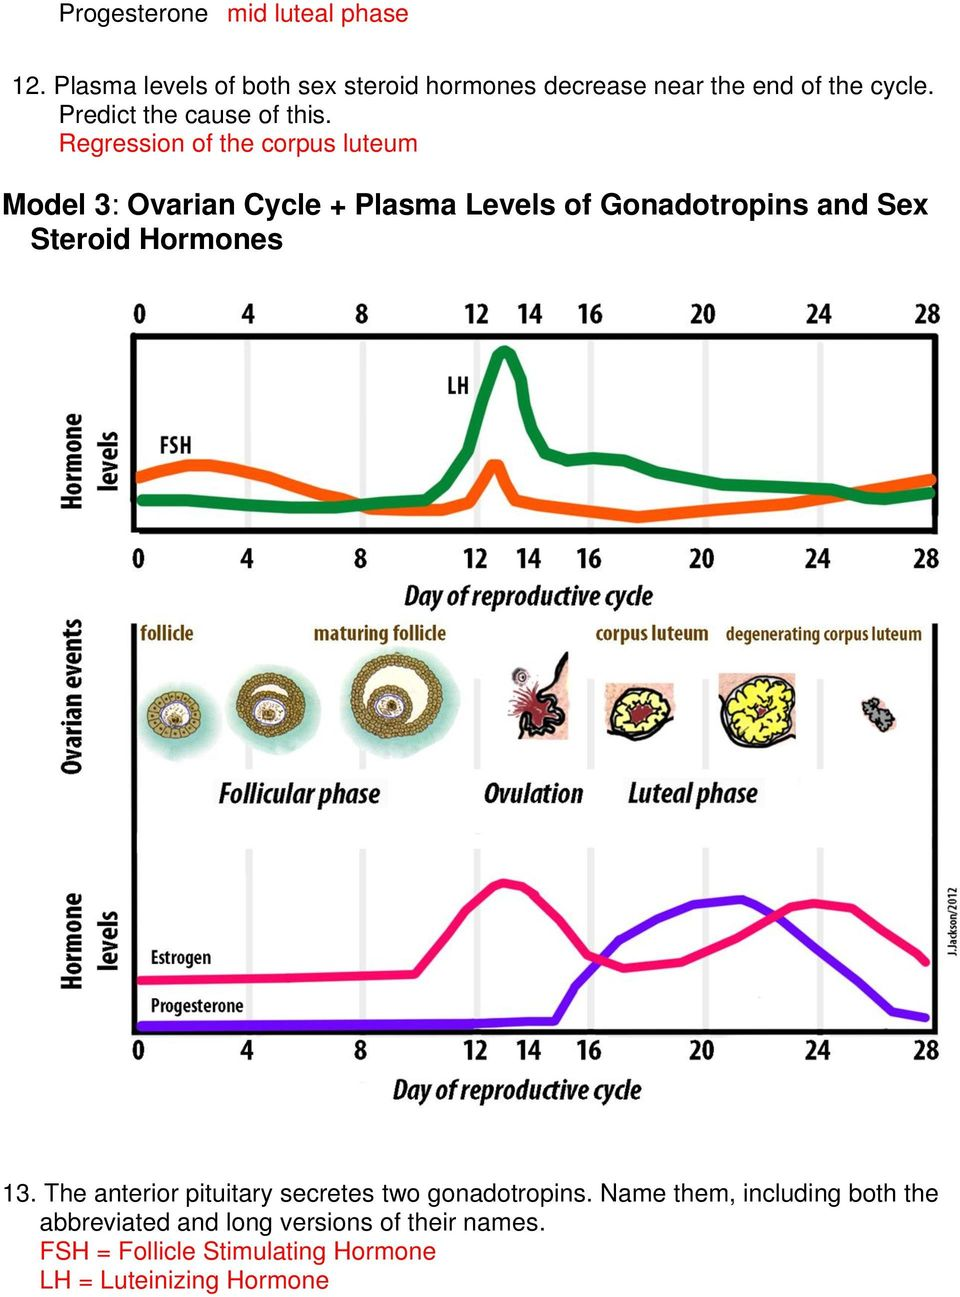 The menstrual cycle model 1 ovarian cycle follicular cells pdf regression of the corpus luteum model 3 ovarian cycle plasma levels of gonadotropins and ibookread Read Online